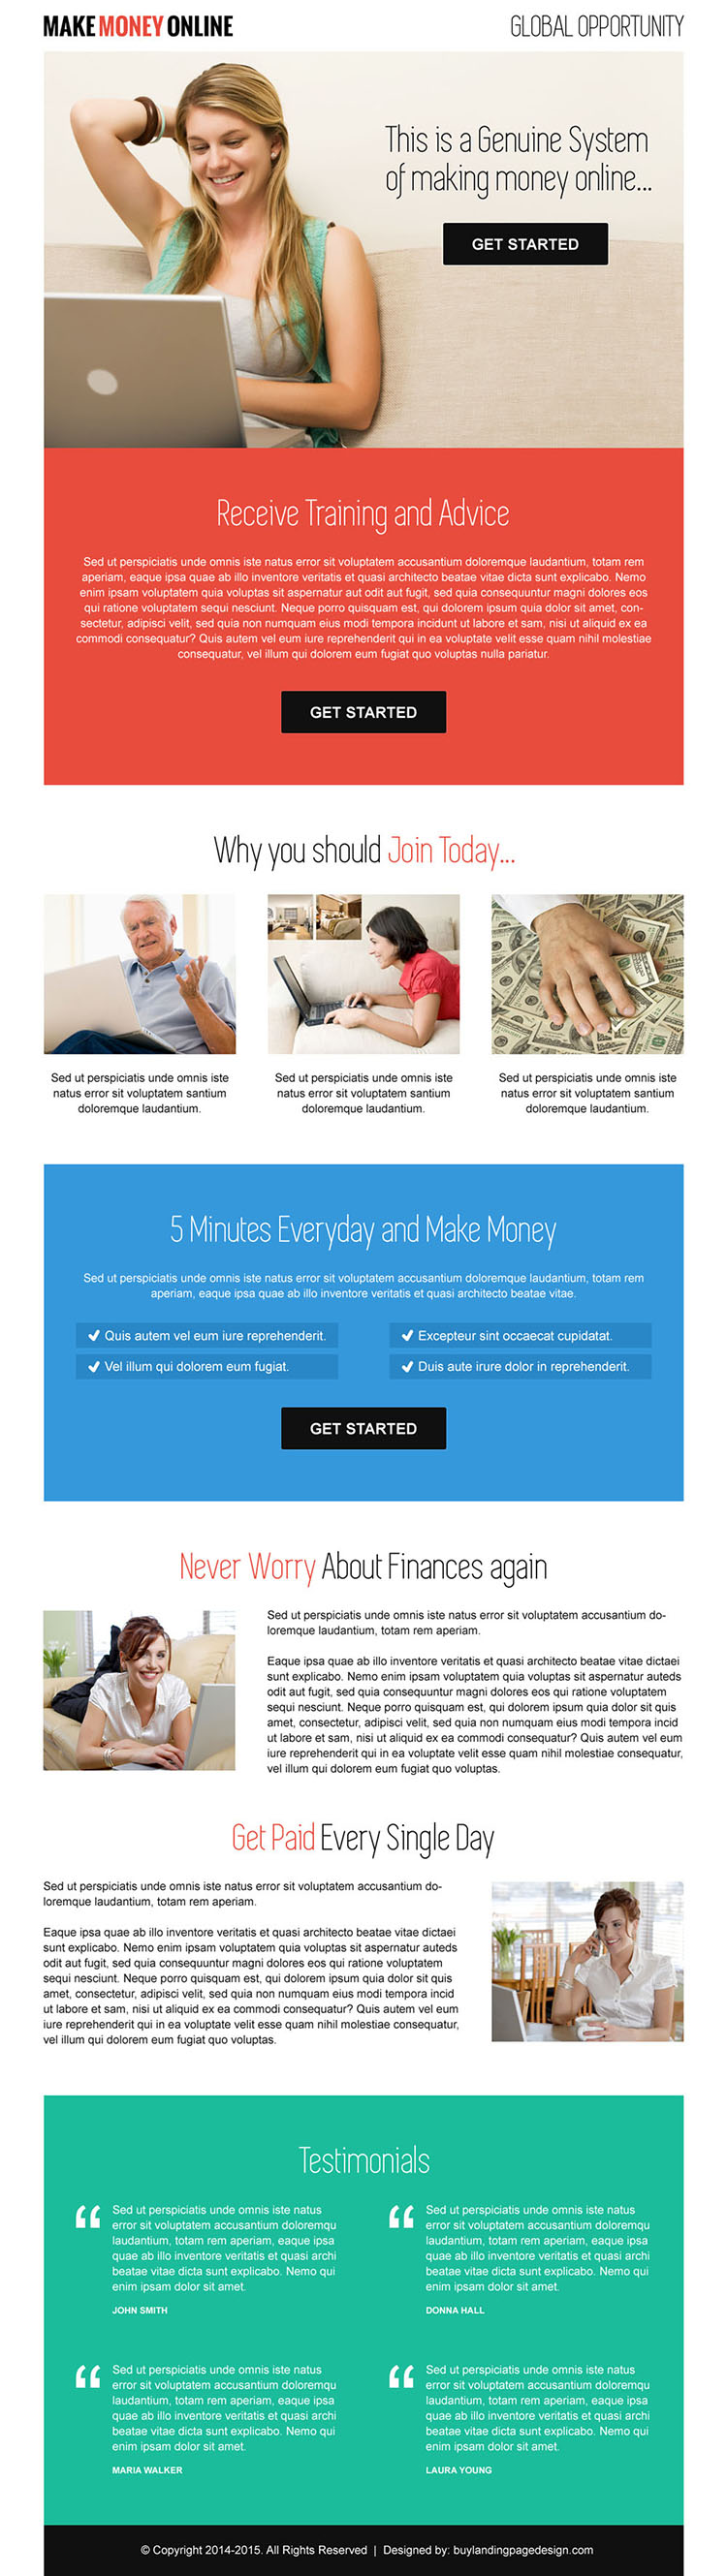 best make money online call to action responsive landing page design template to boost your business conversion